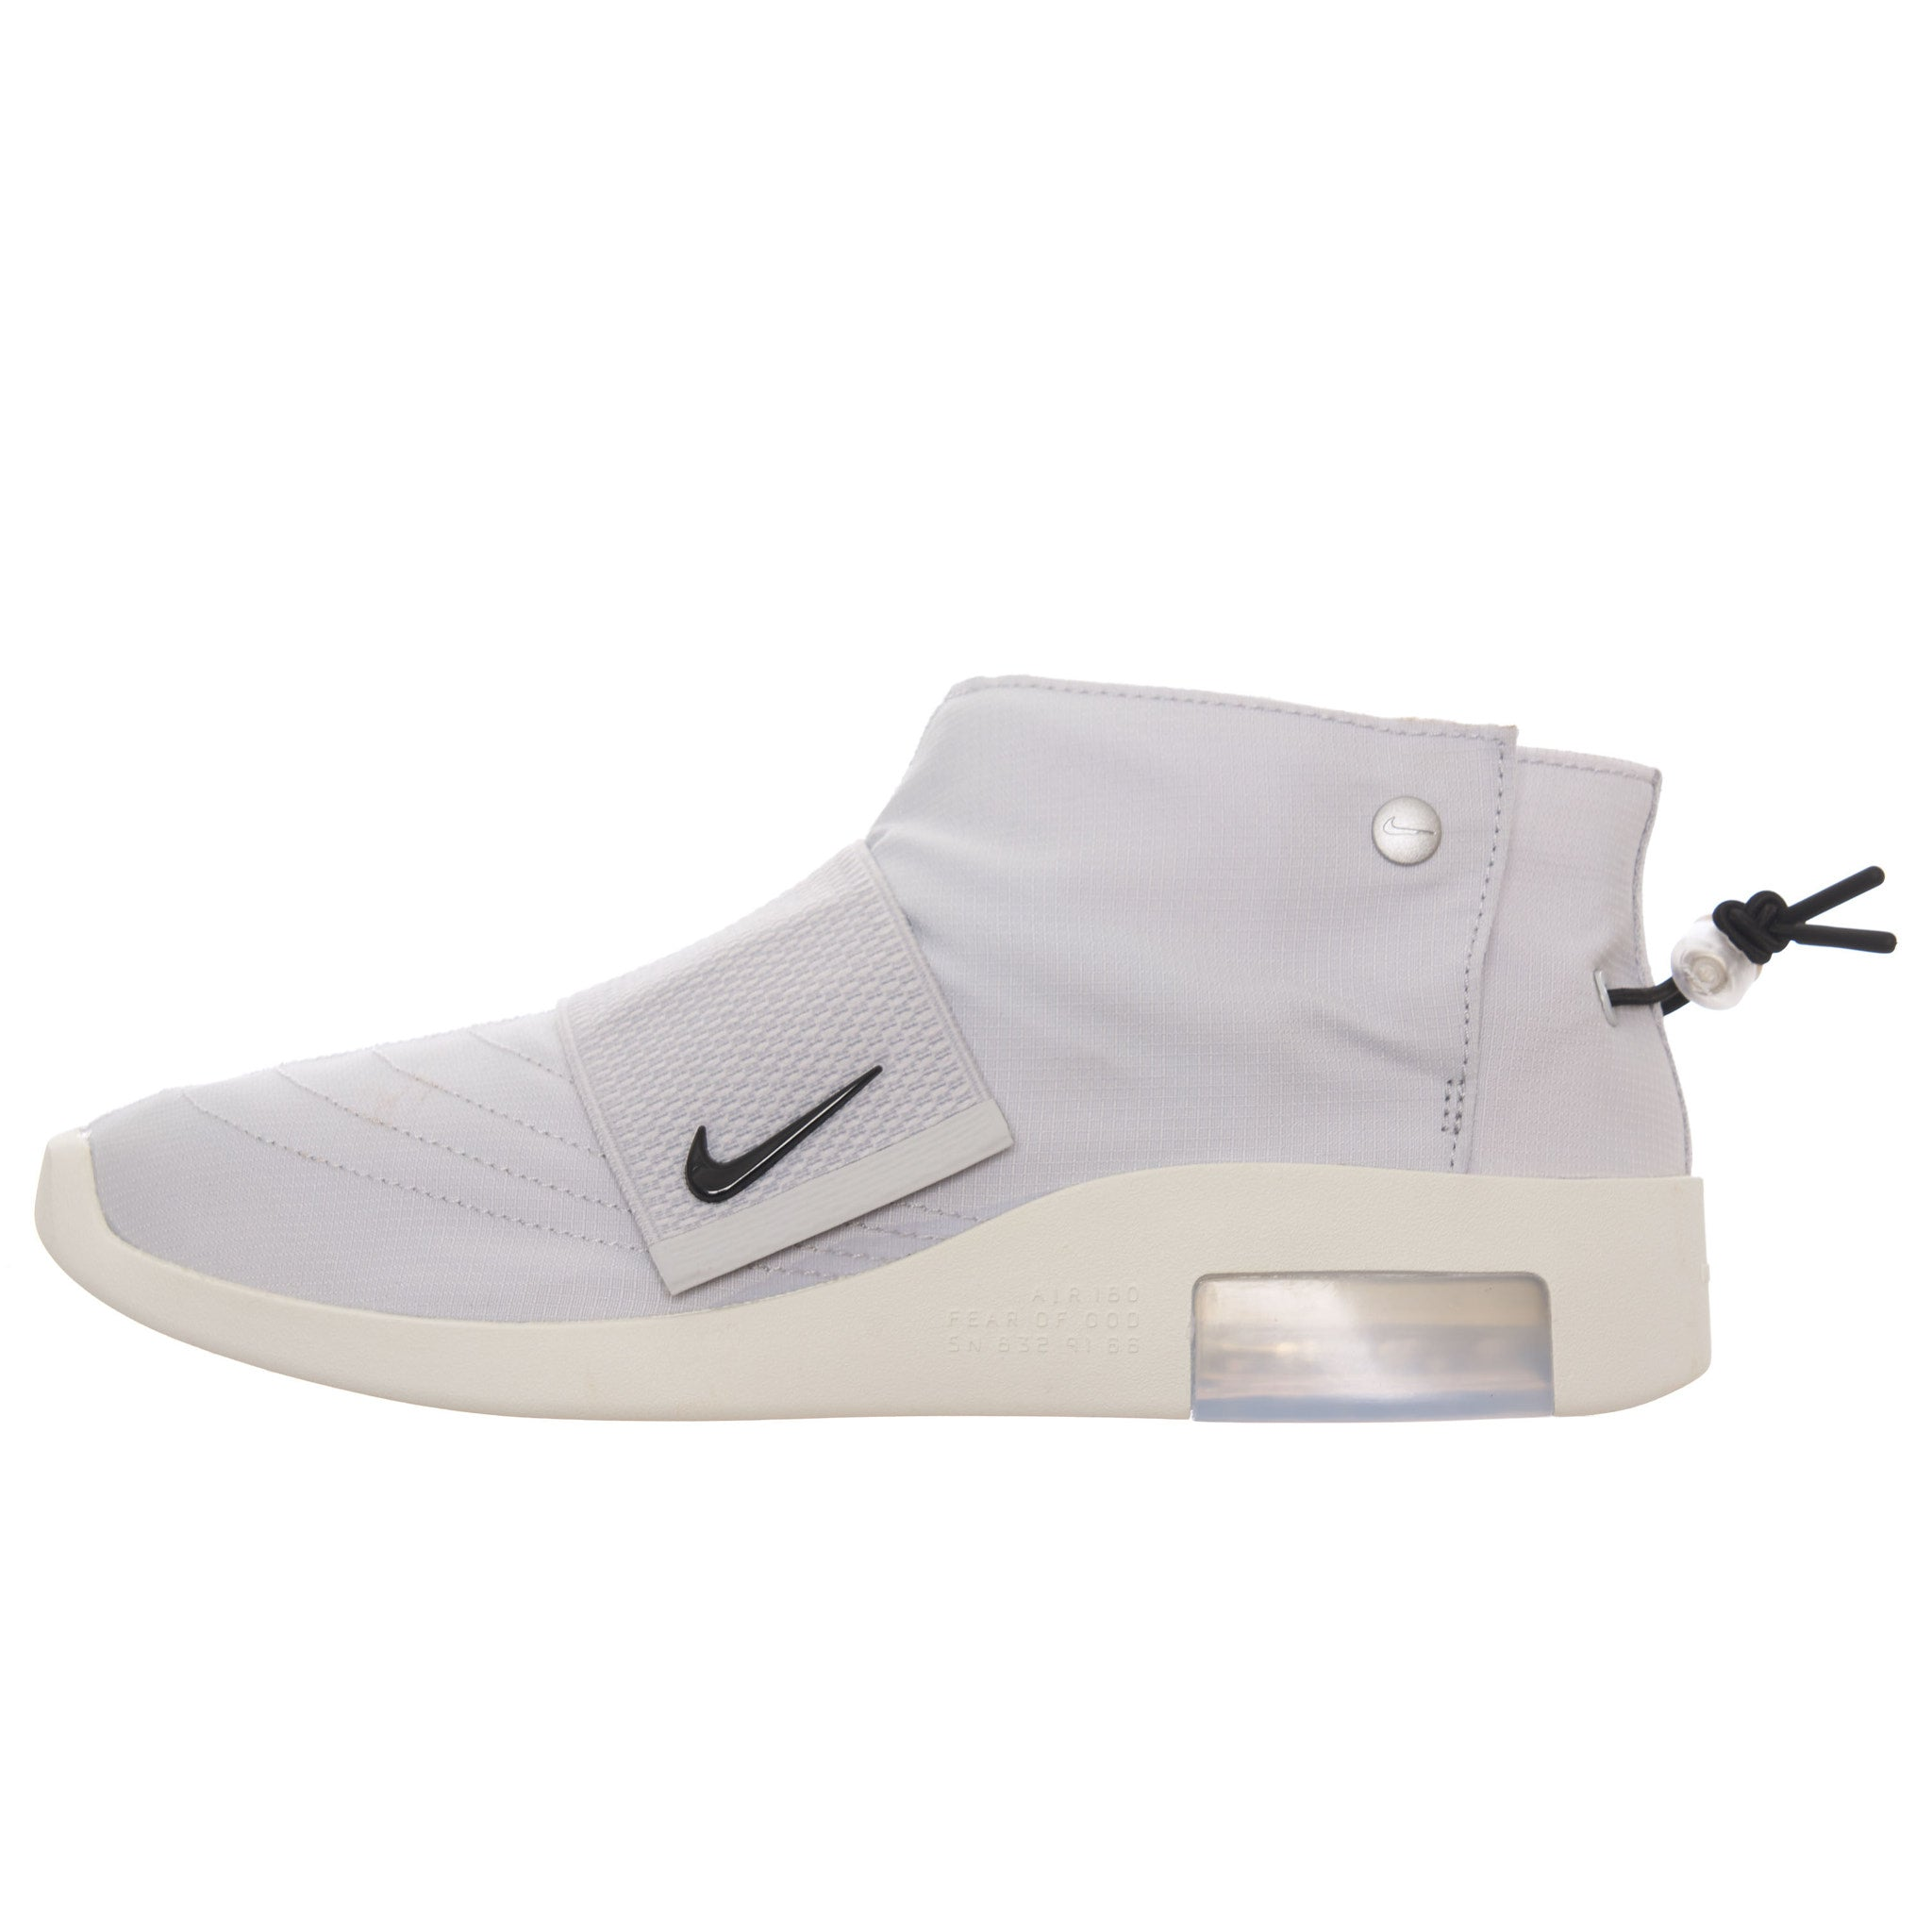 NIKE FEAR OF GOD STRAP